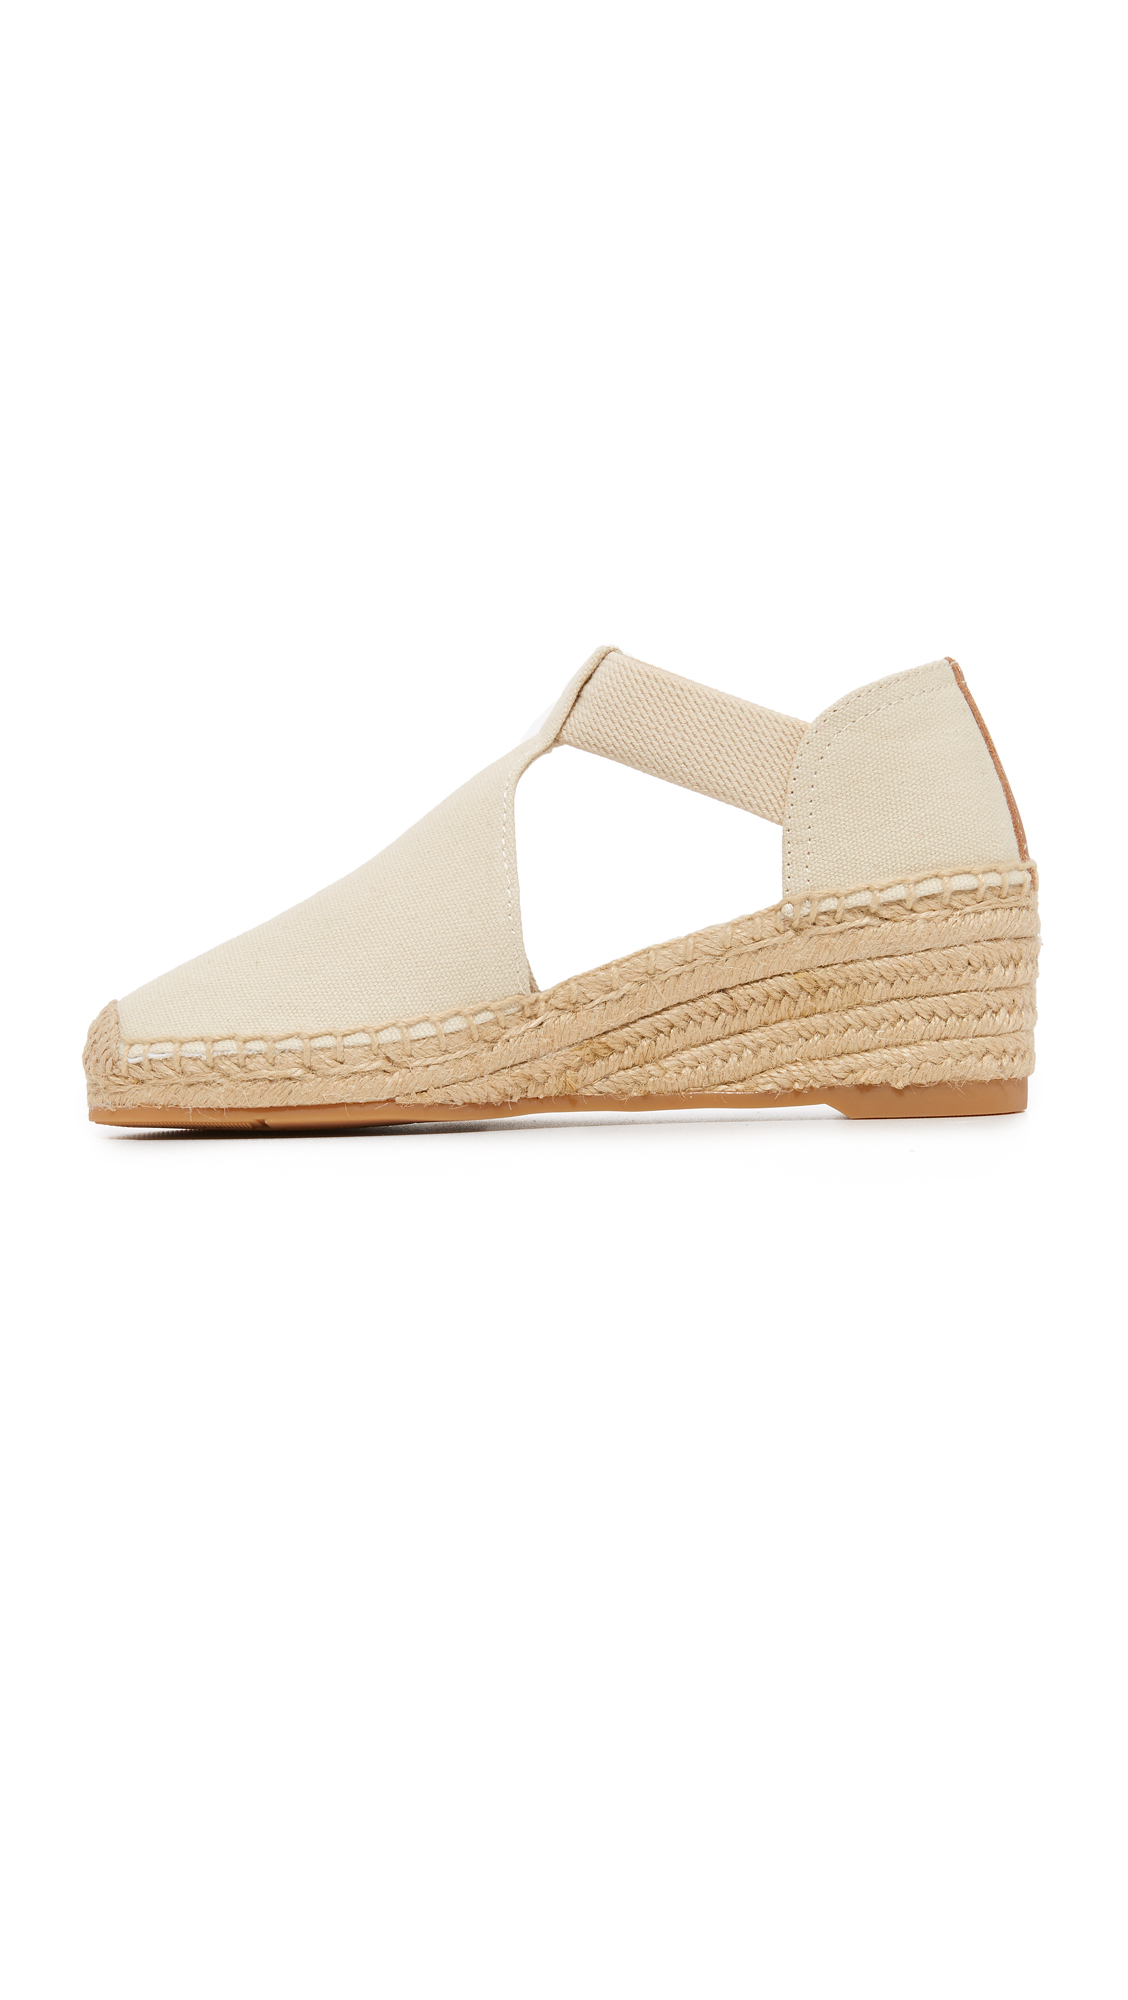 b16470748f8 Tory Burch Catalina 2 Wedge Espadrilles | SHOPBOP